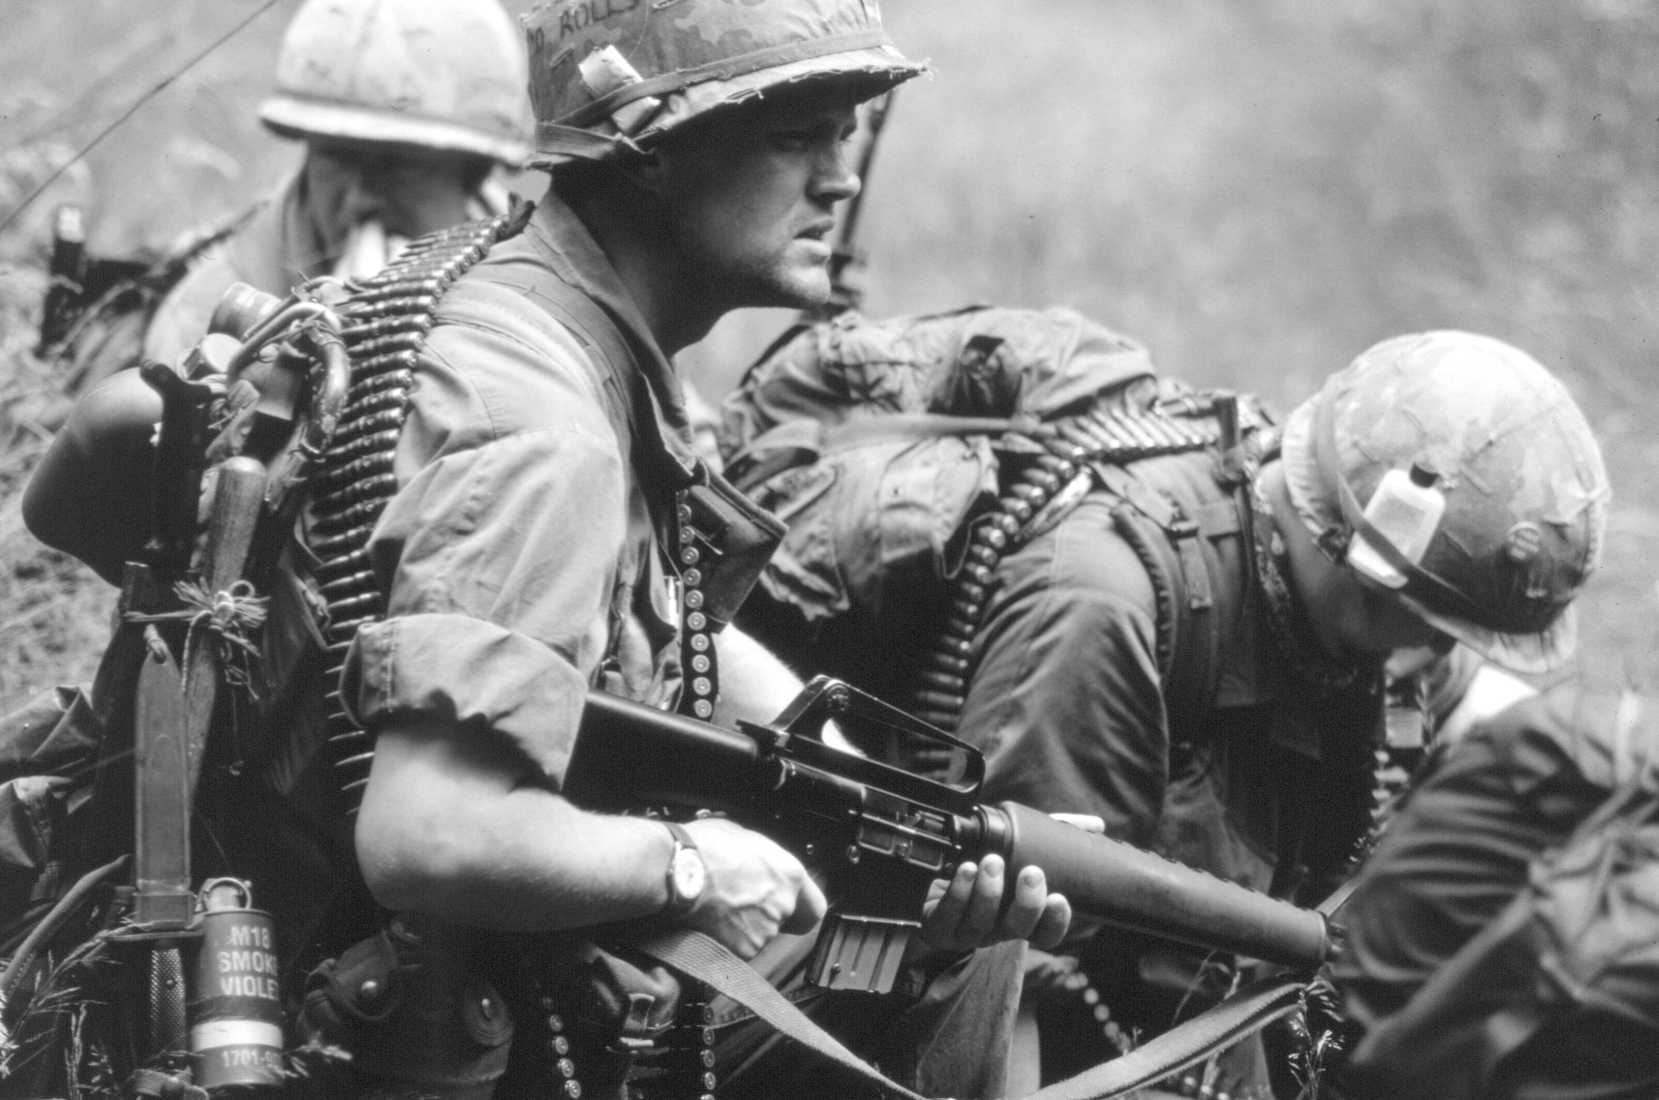 A Day In The Life Of A Vietnam M 60 Gunner